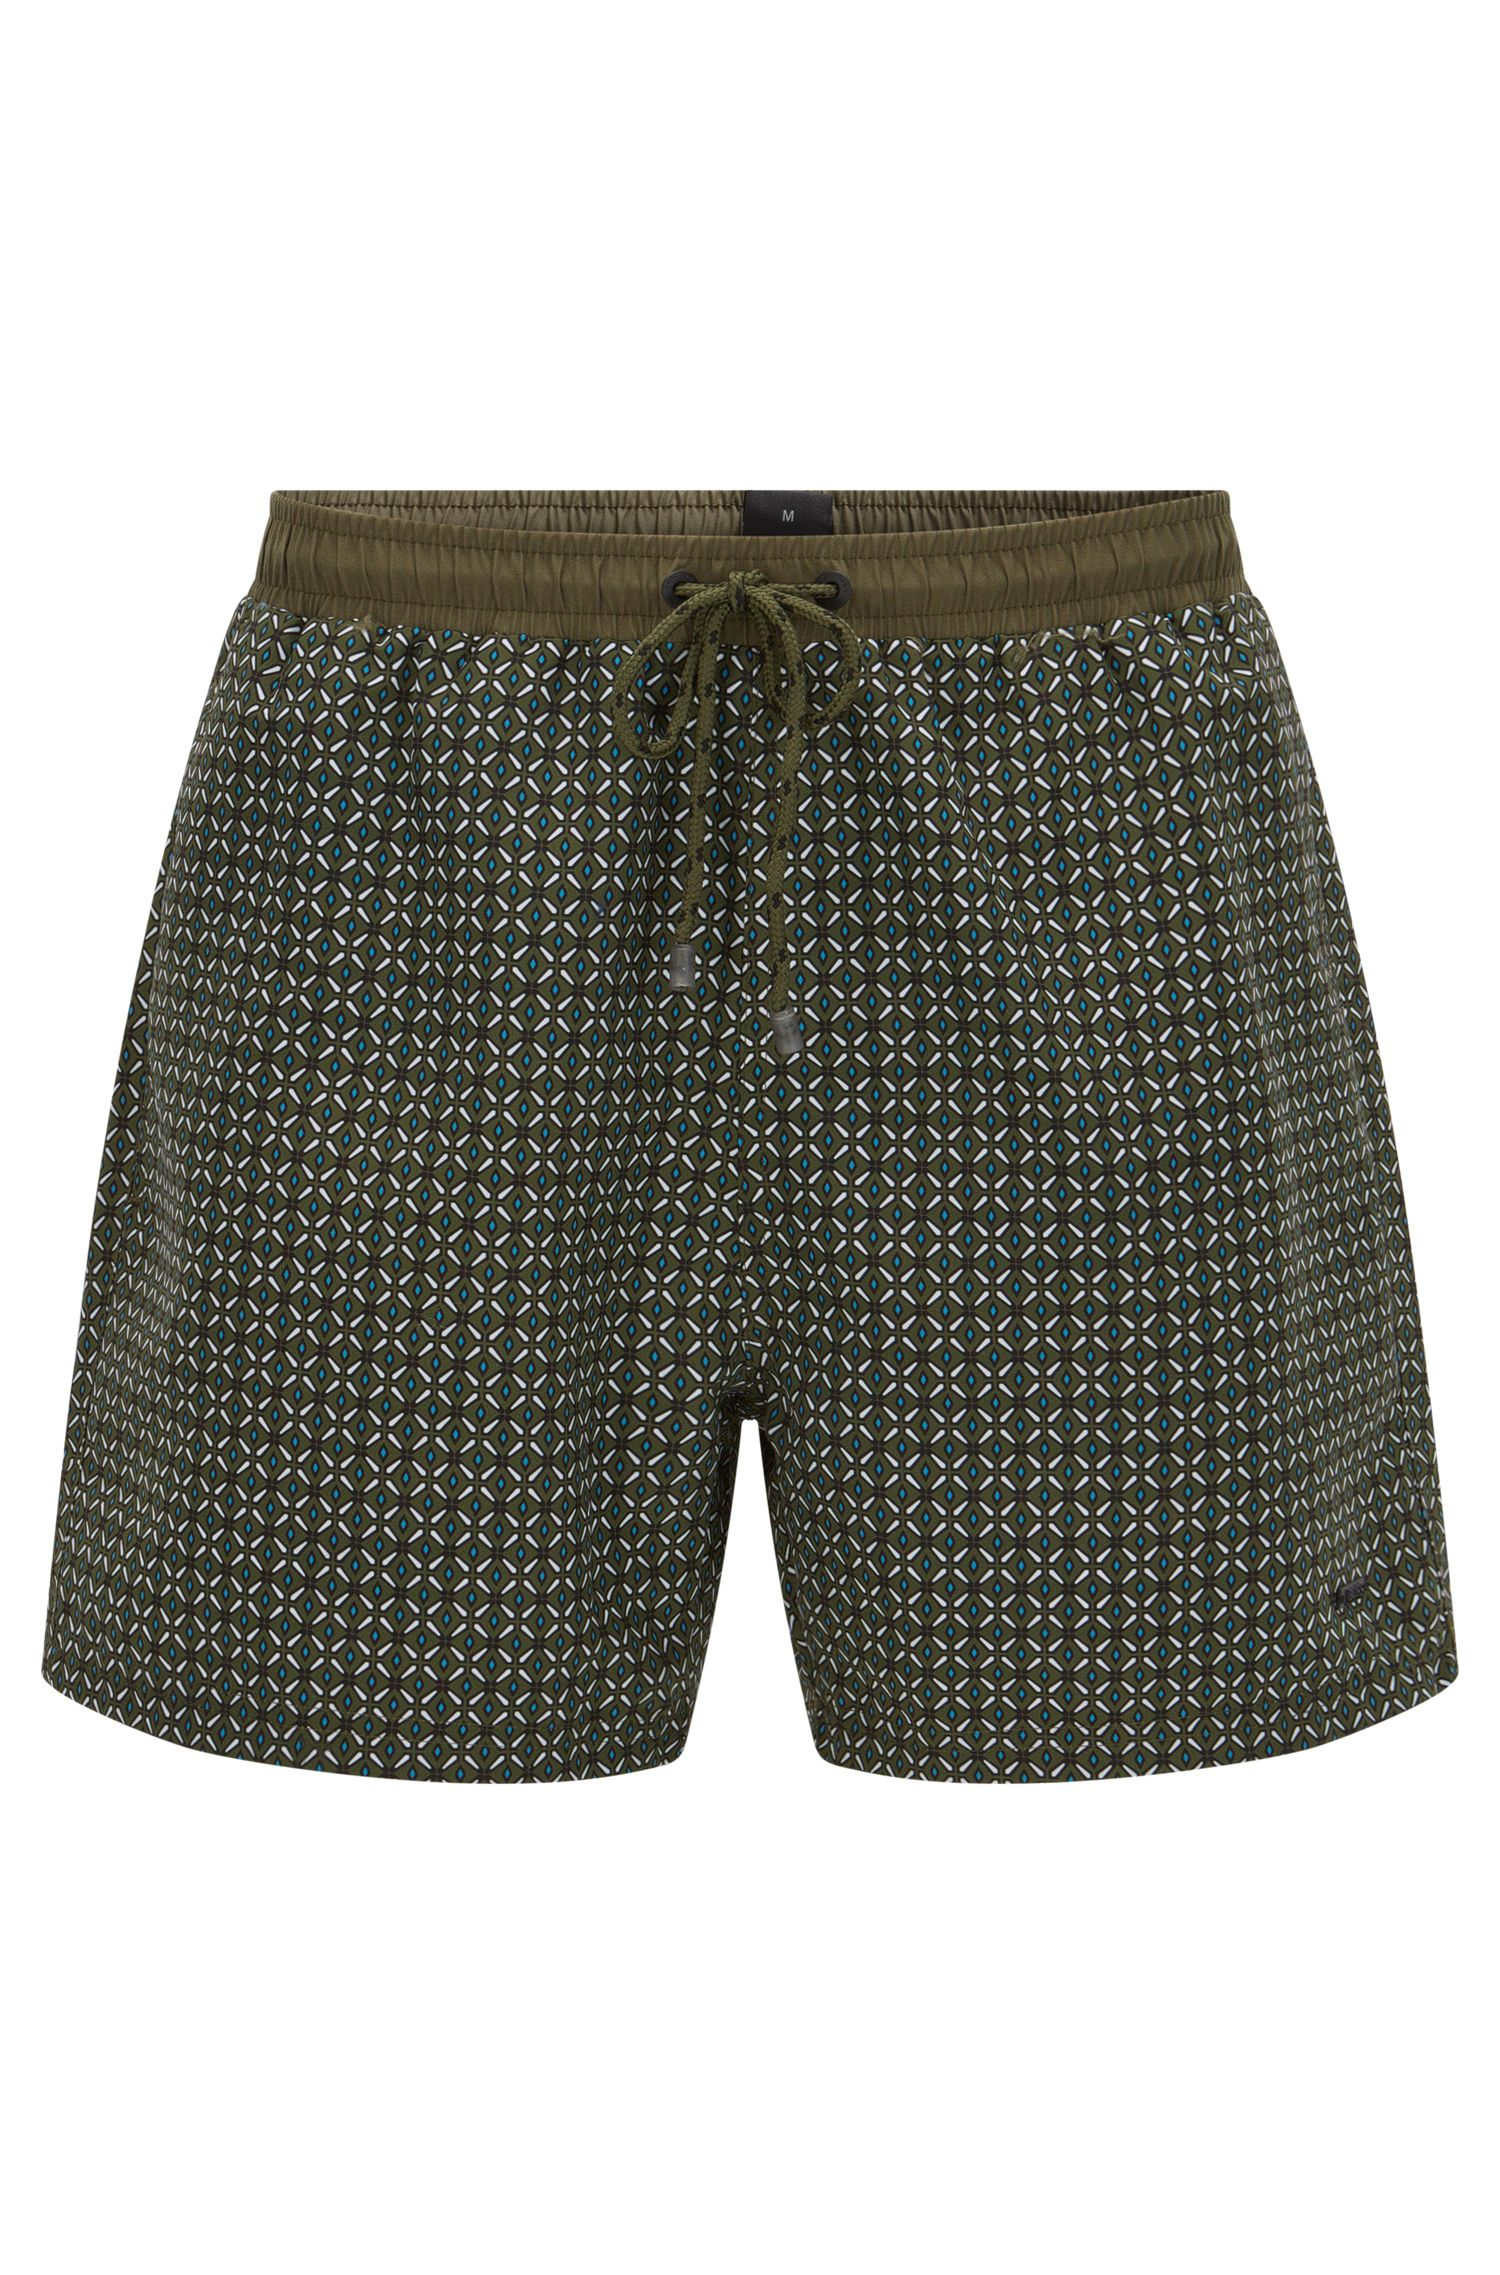 Geometric Quick Dry Swim Trunk | Piranha, Open Green